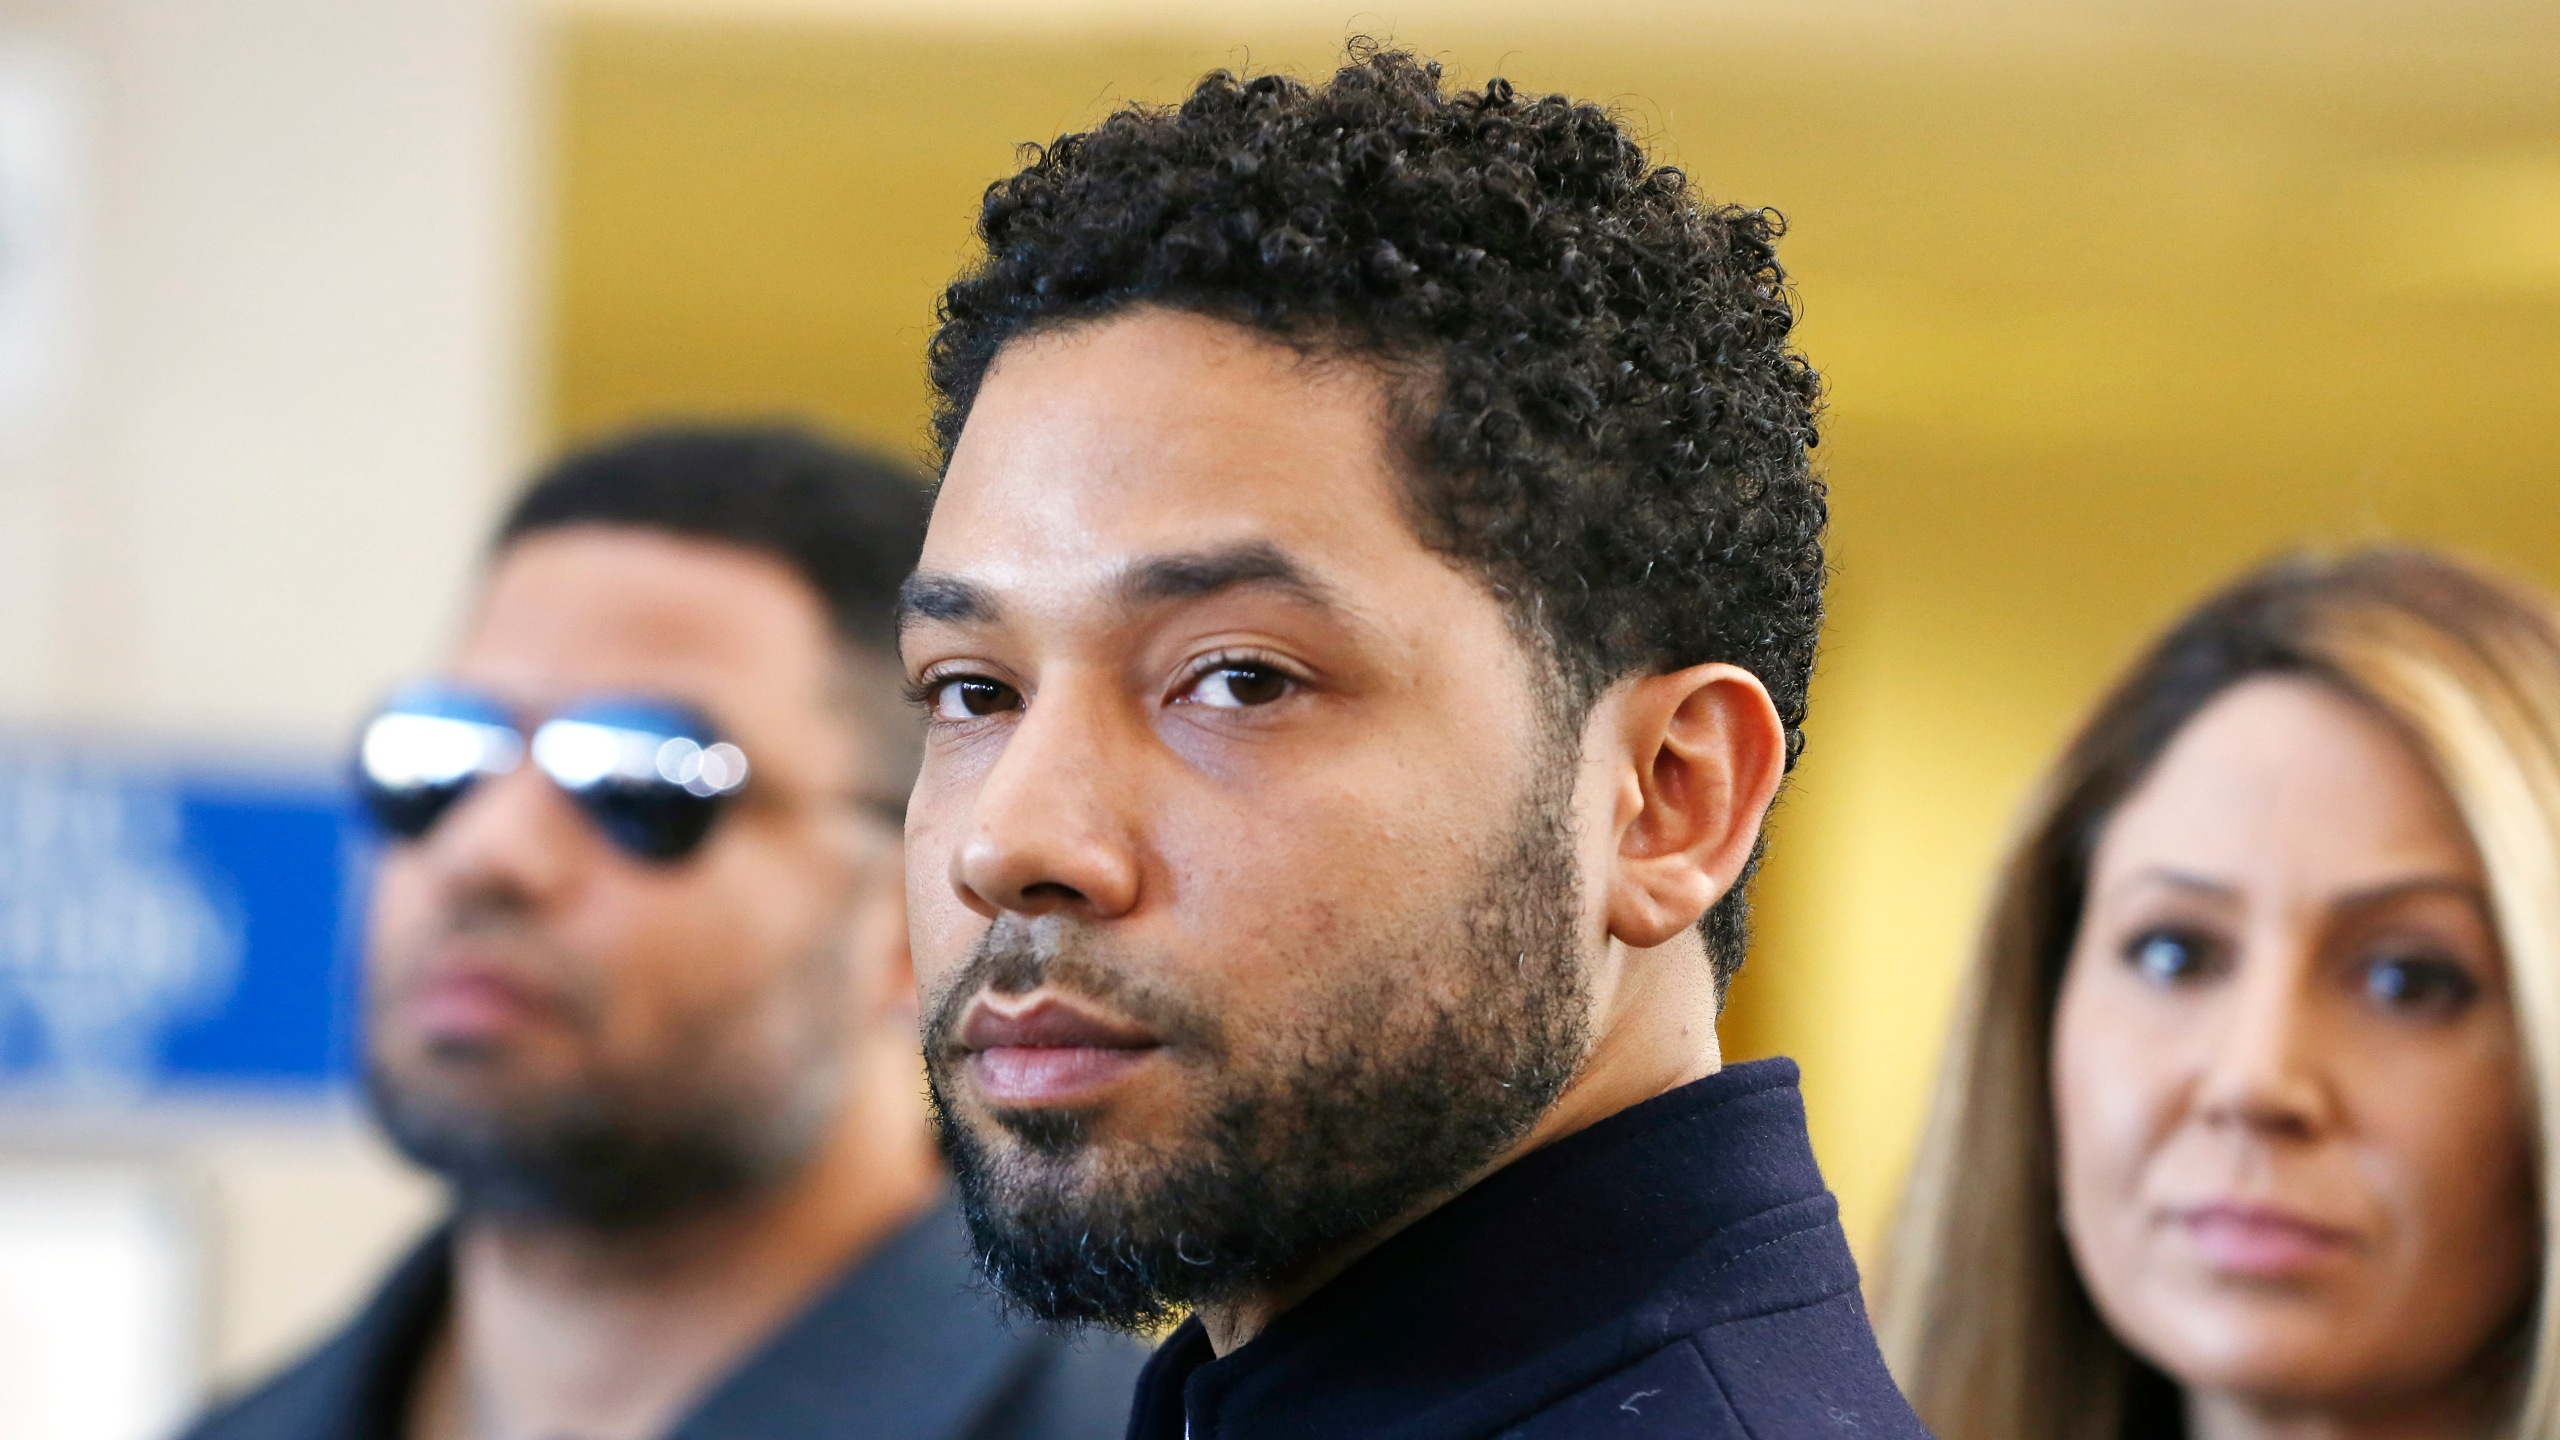 Actor Jussie Smollett after his court appearance at Leighton Courthouse on March 26, 2019, in Chicago, Illinois.(Credit: Nuccio DiNuzzo/Getty Images)